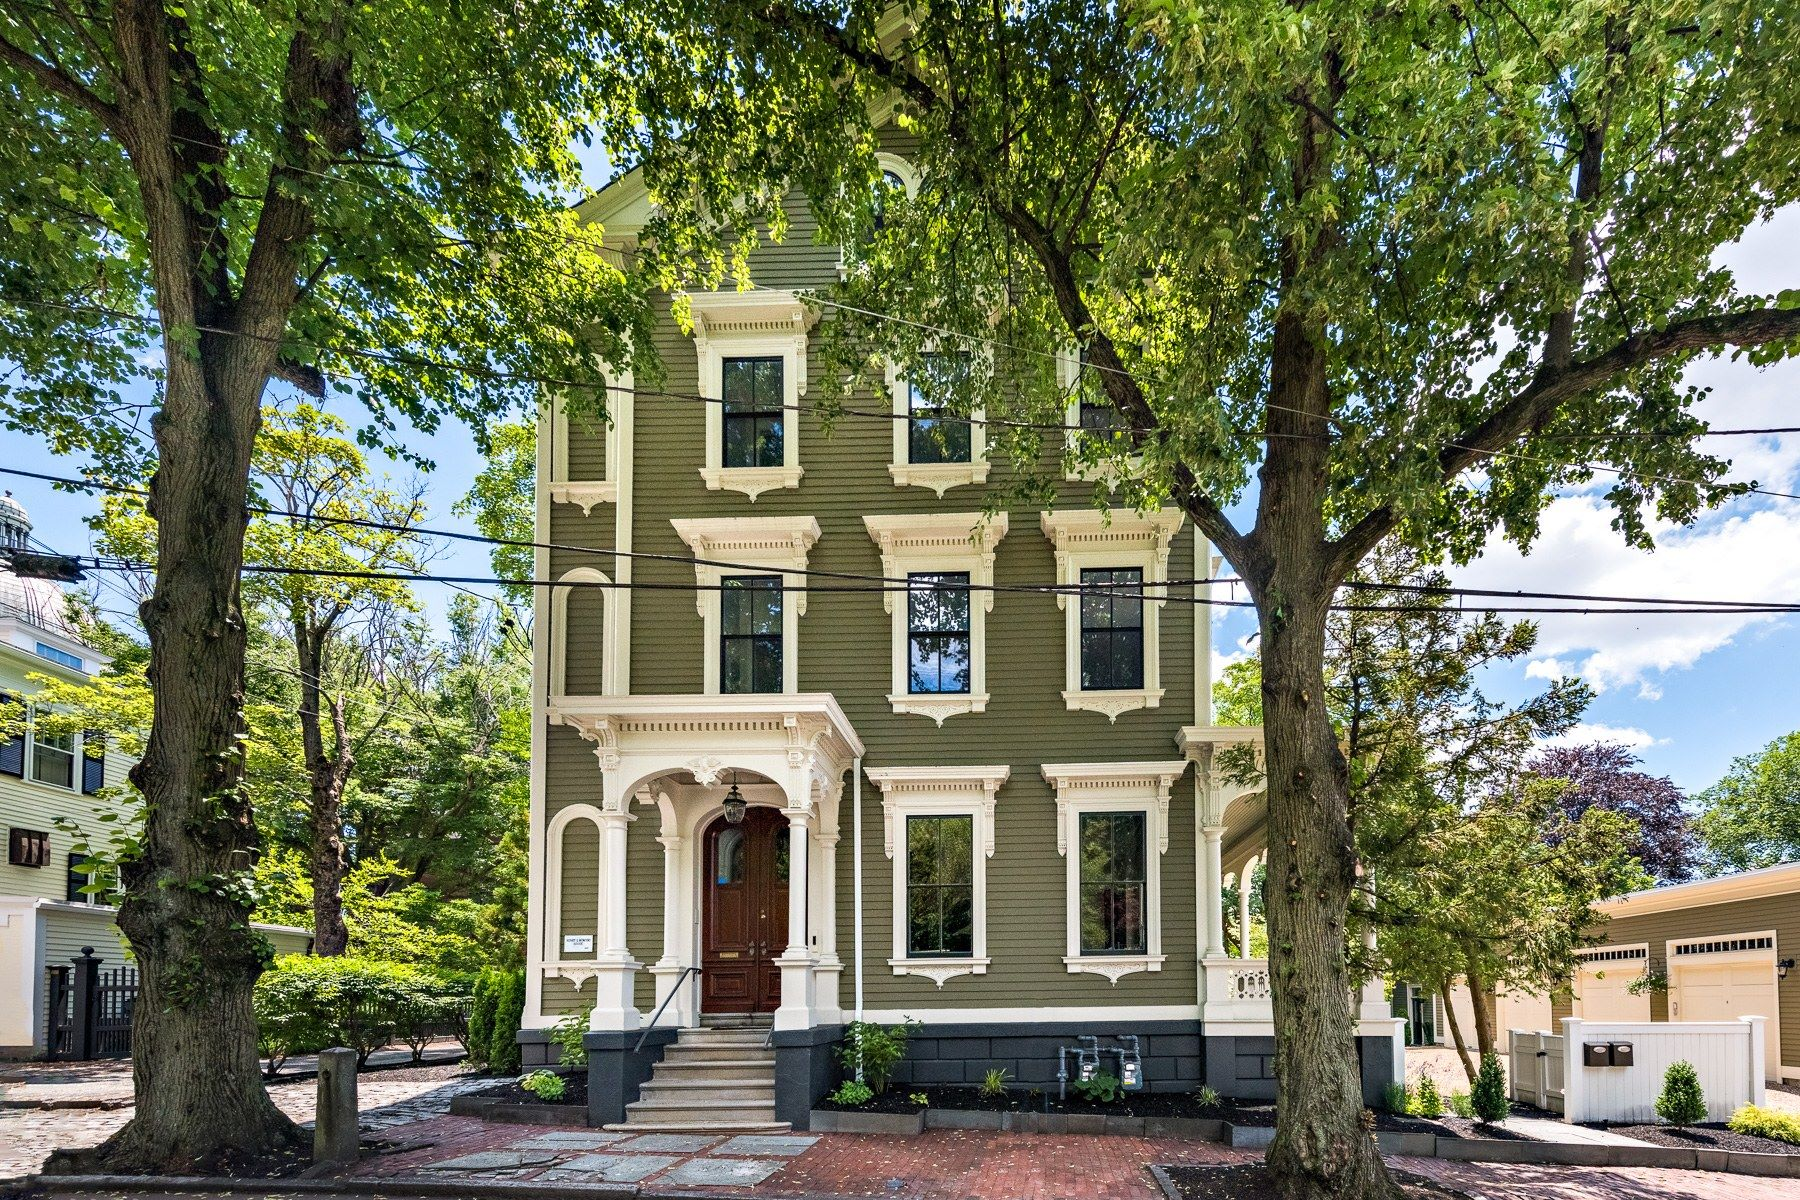 Condominiums for Sale at 13 Cushing Street, #1, East Side Of Providence, RI 13 Cushing Street, 1 Providence, Rhode Island 02906 United States